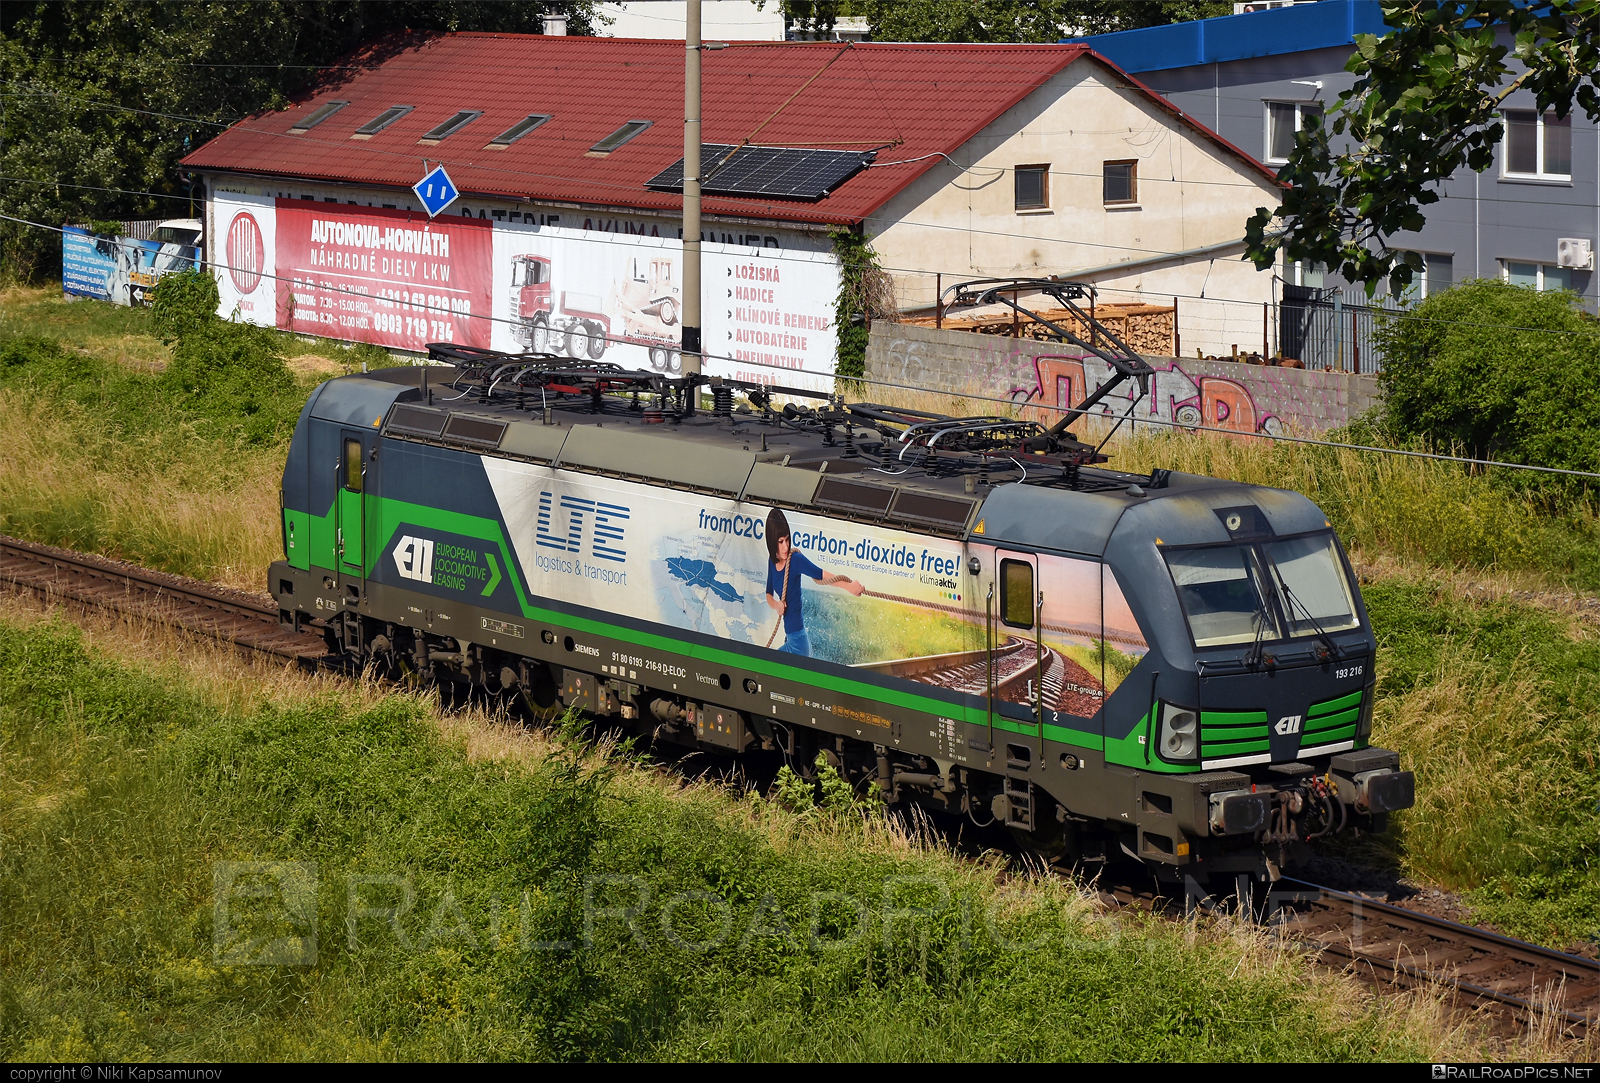 Siemens Vectron MS - 193 216 operated by LTE Logistik und Transport GmbH #ell #ellgermany #eloc #europeanlocomotiveleasing #lte #ltelogistikundtransport #ltelogistikundtransportgmbh #siemens #siemensvectron #siemensvectronms #vectron #vectronms